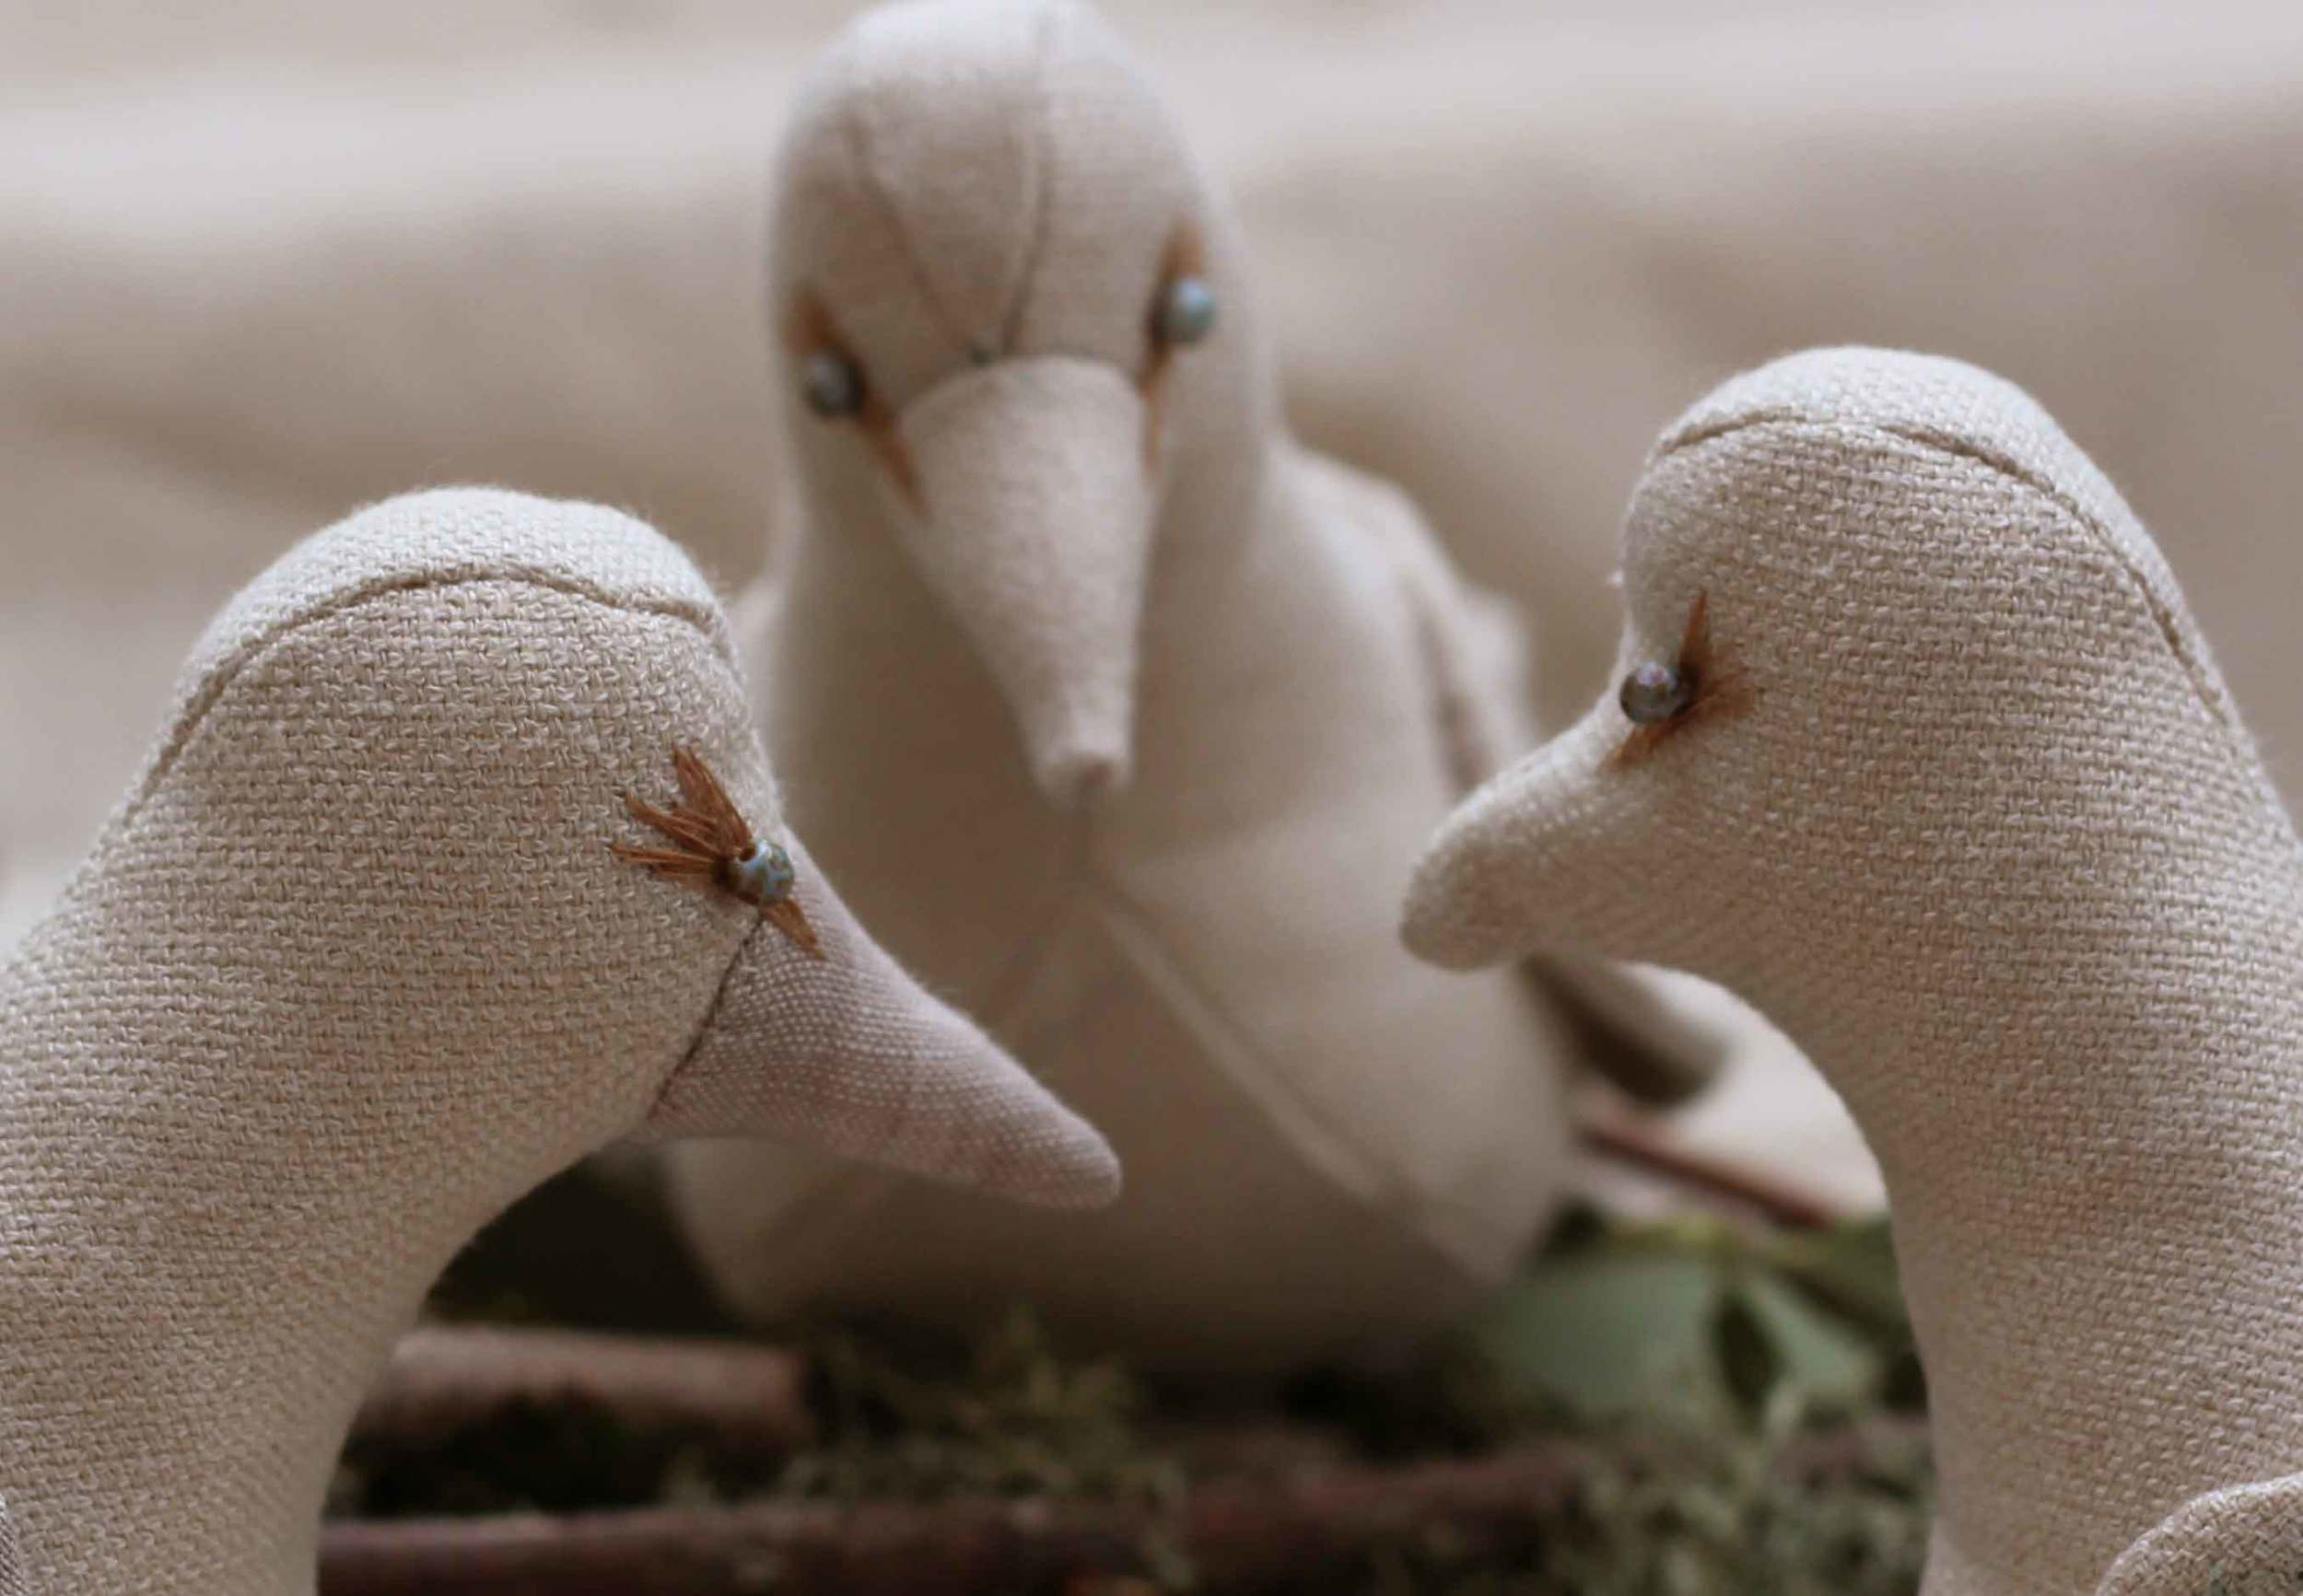 Doves on the left with separate beaks, dove on the right with built-in beak.